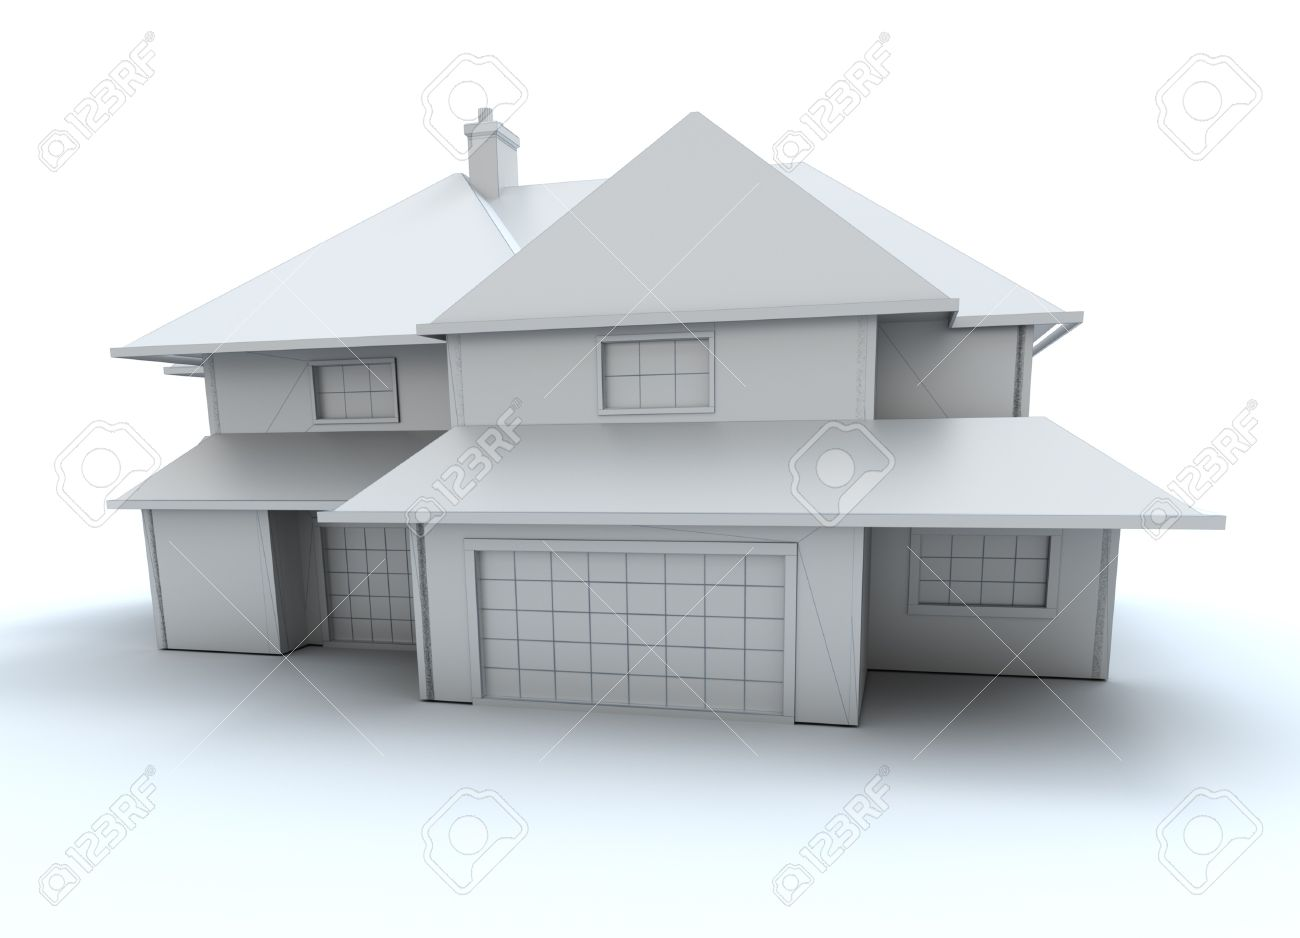 Architecture House Model